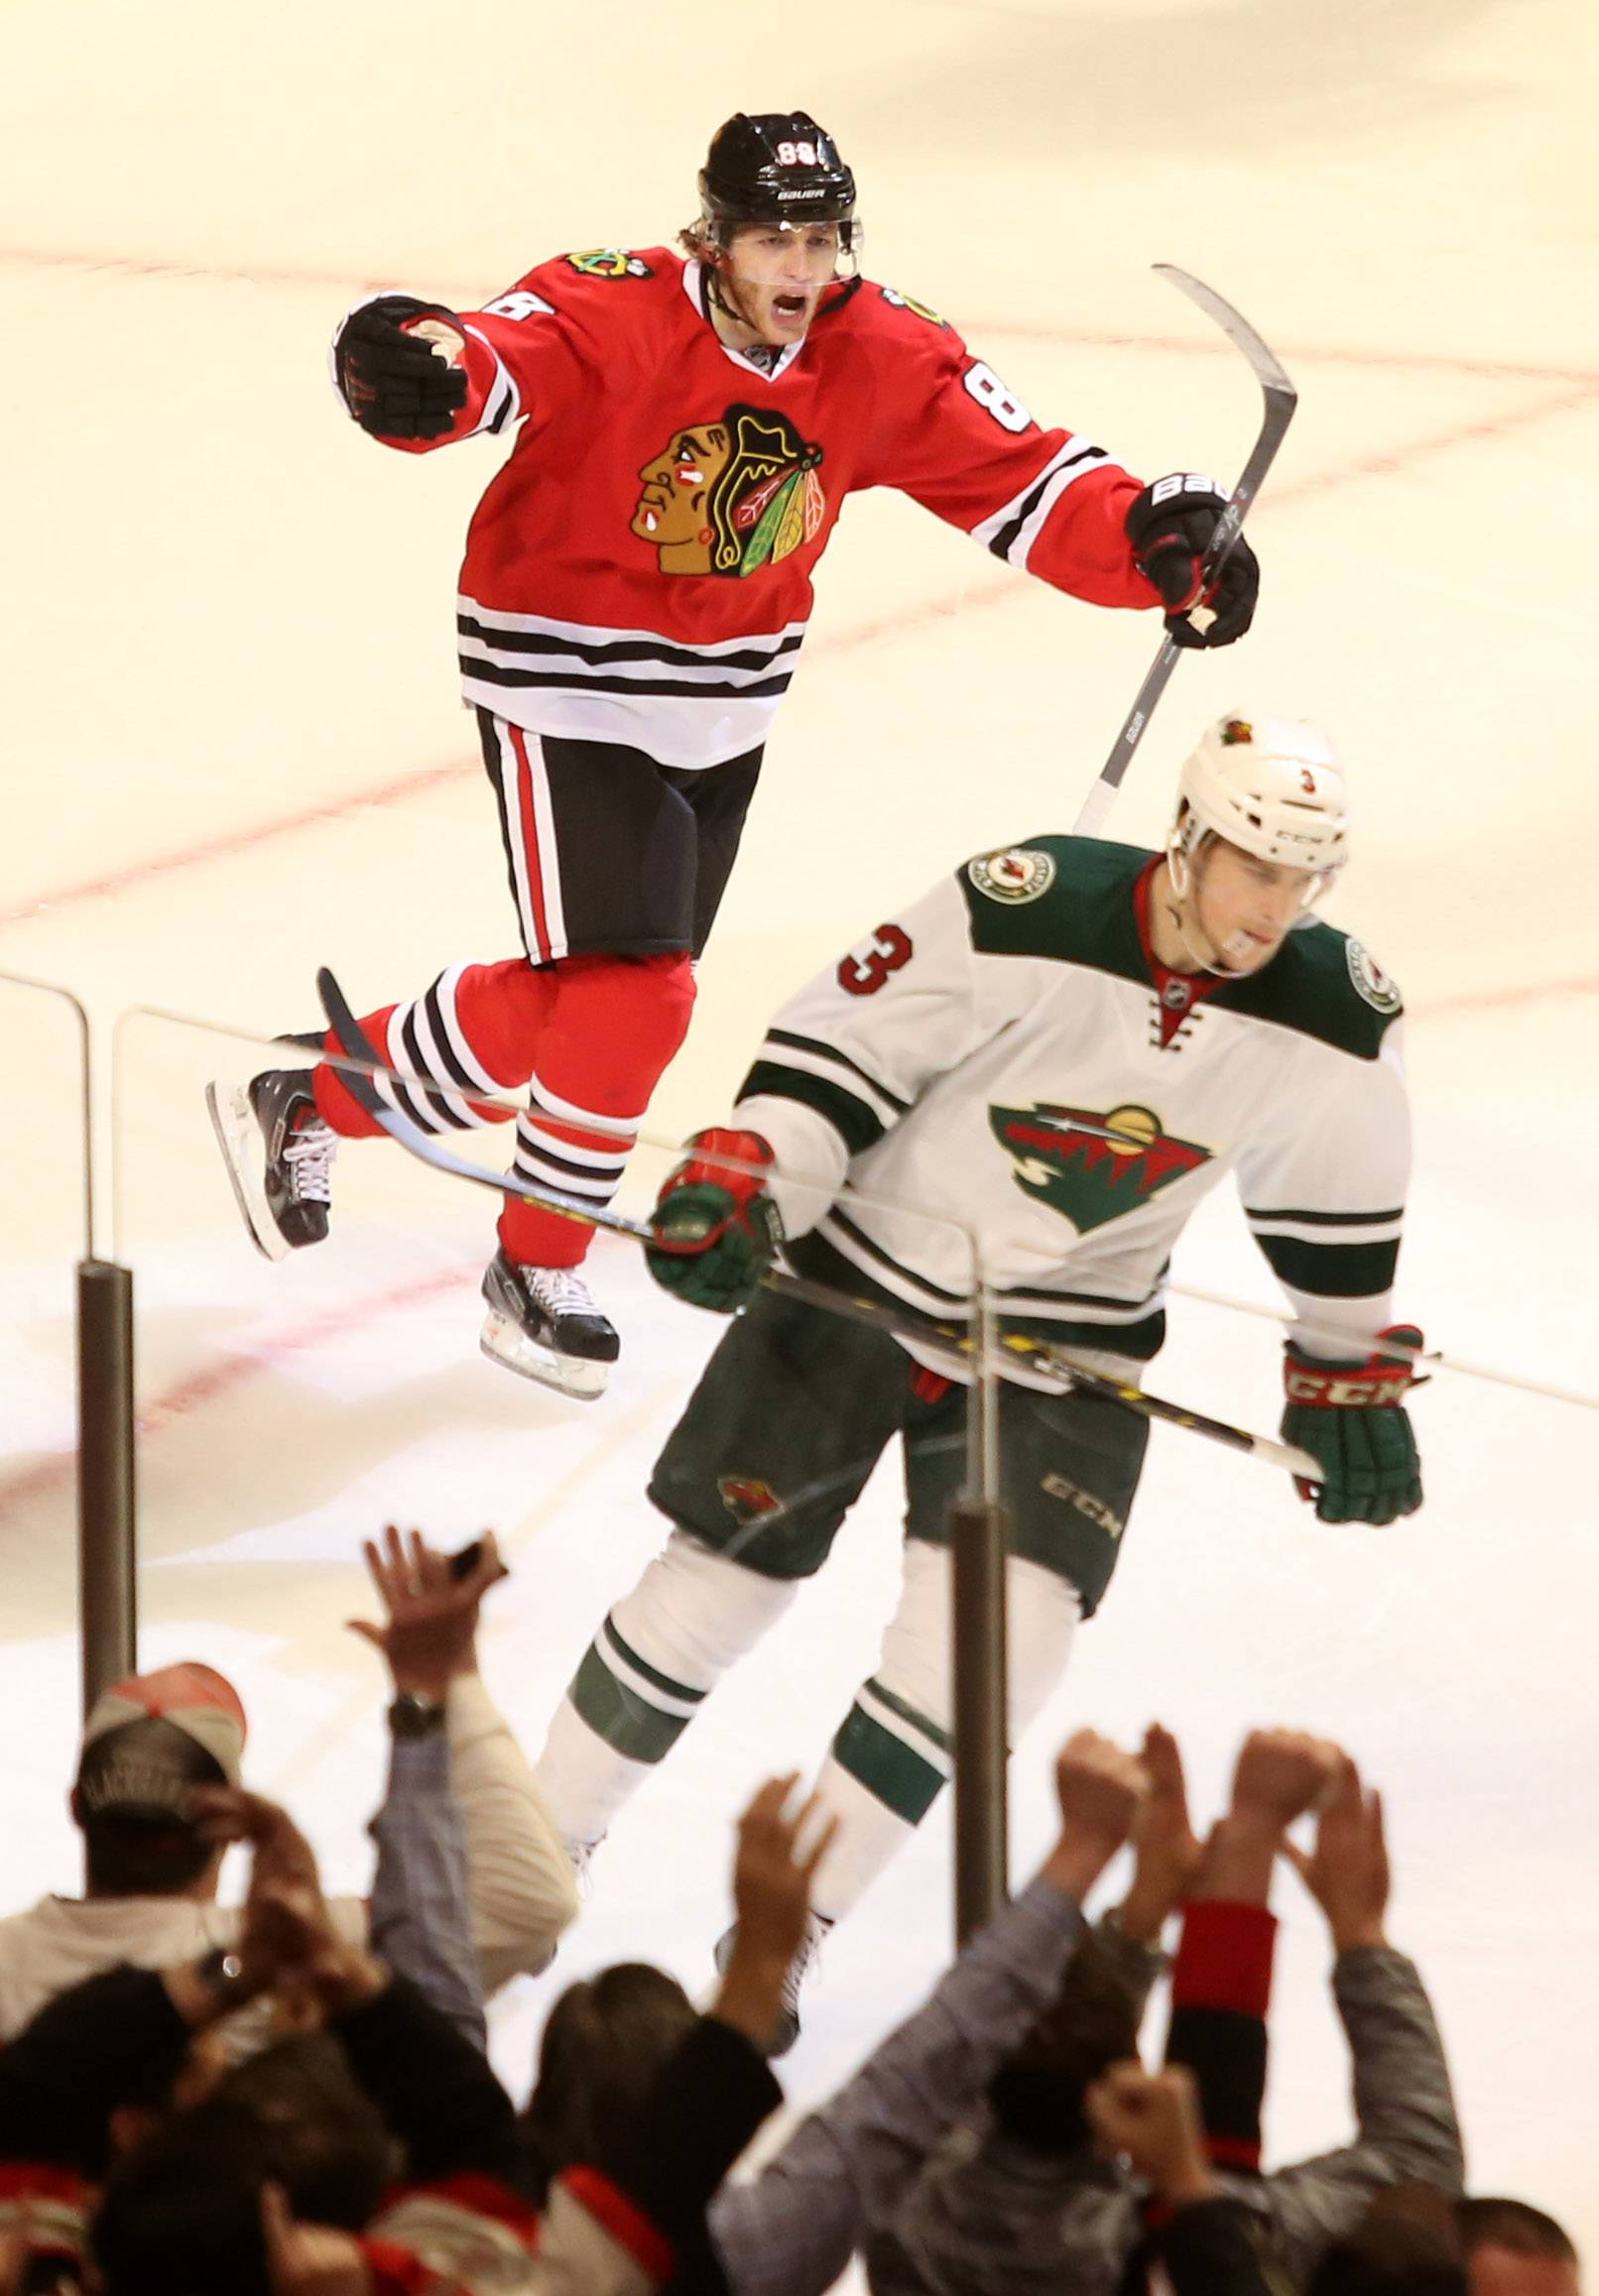 Daniel White/dwhite@dailyherald.comPatrick Kane celebrates his game leading third period goal during a 5-2 win over the Wild. Charlie Coyle skates away from the play.